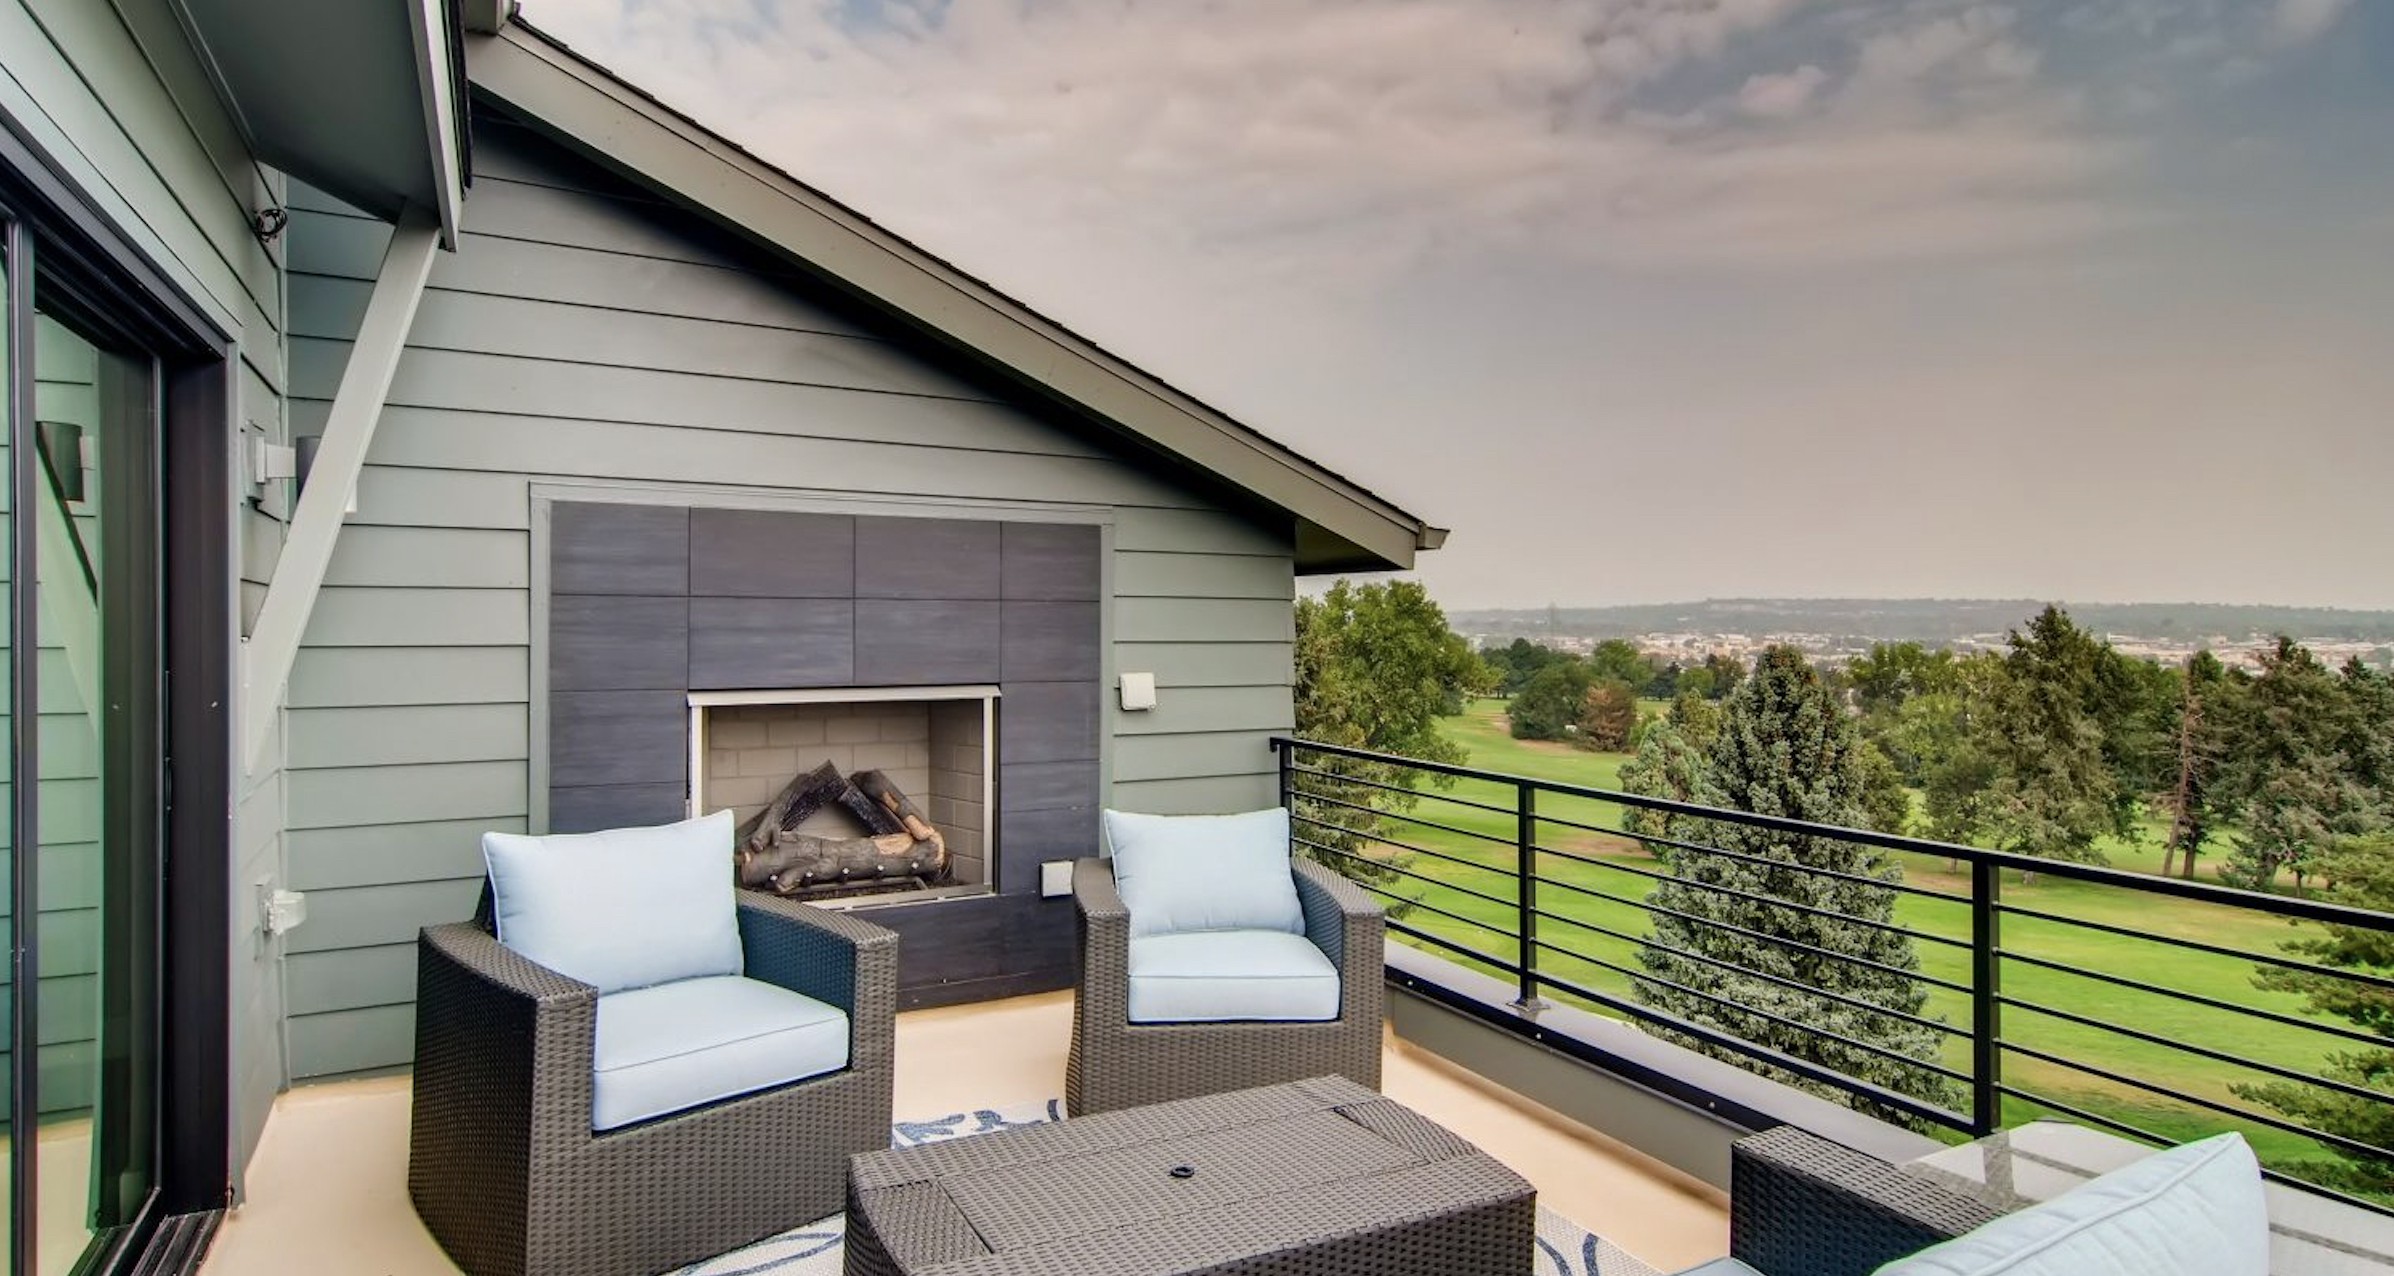 5390' Community by Koelbel in the Berkeley Tennyson Neighborhood Denver New Construction Homes For Sale Rooftop